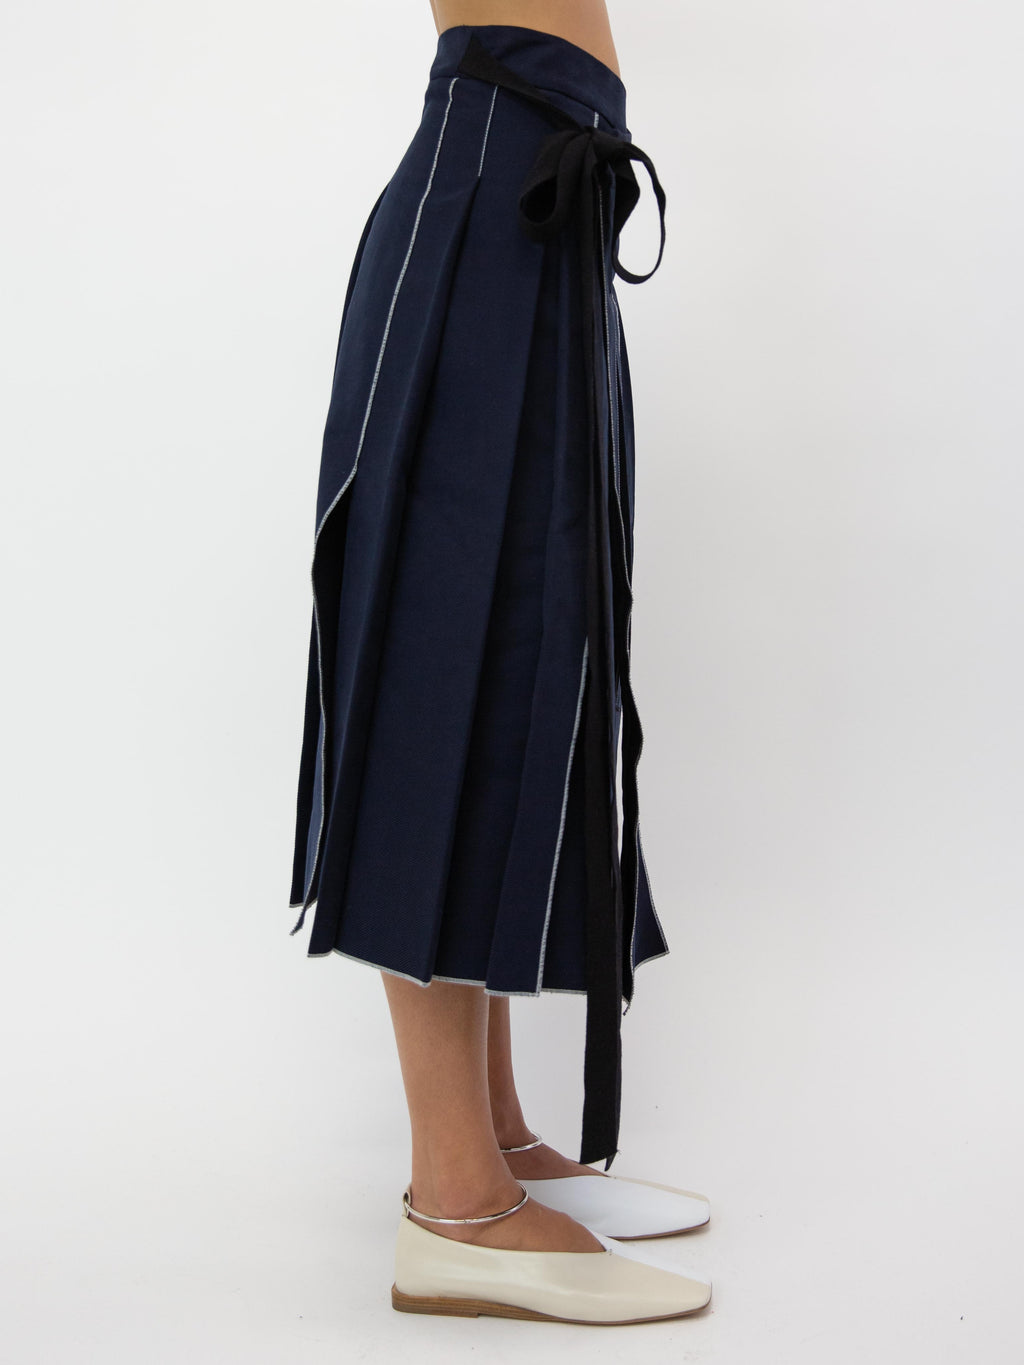 SARA LANZI Pleated Pareo Skirt - Dark Blue